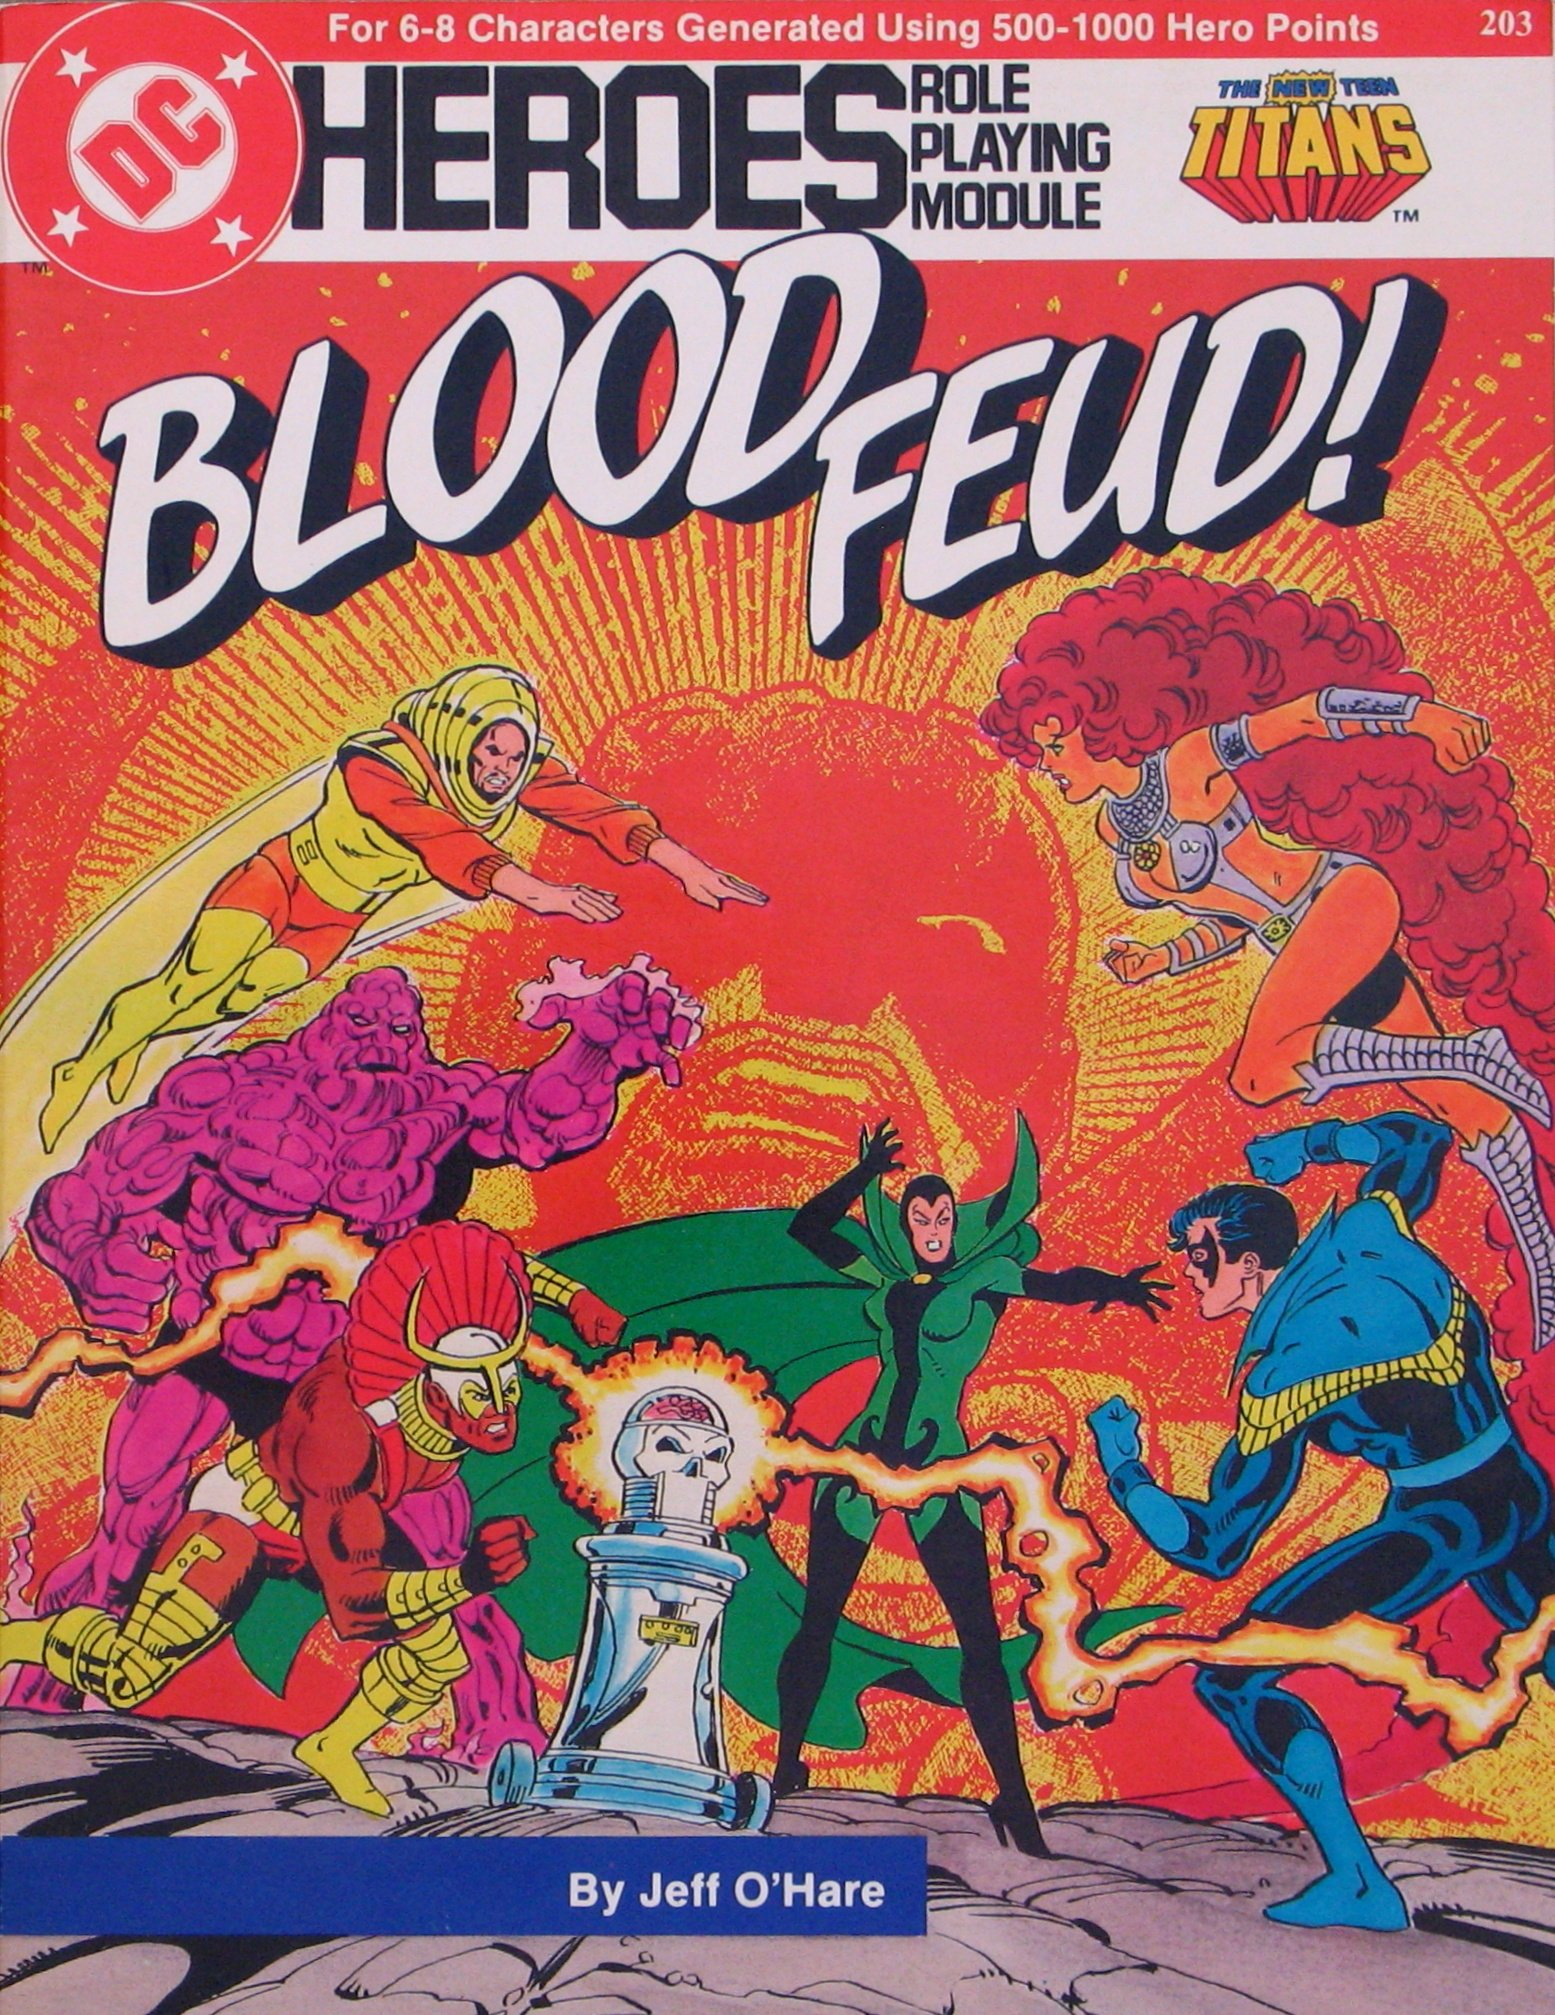 DC Heroes Role Playing Module: Blood Feud - Used